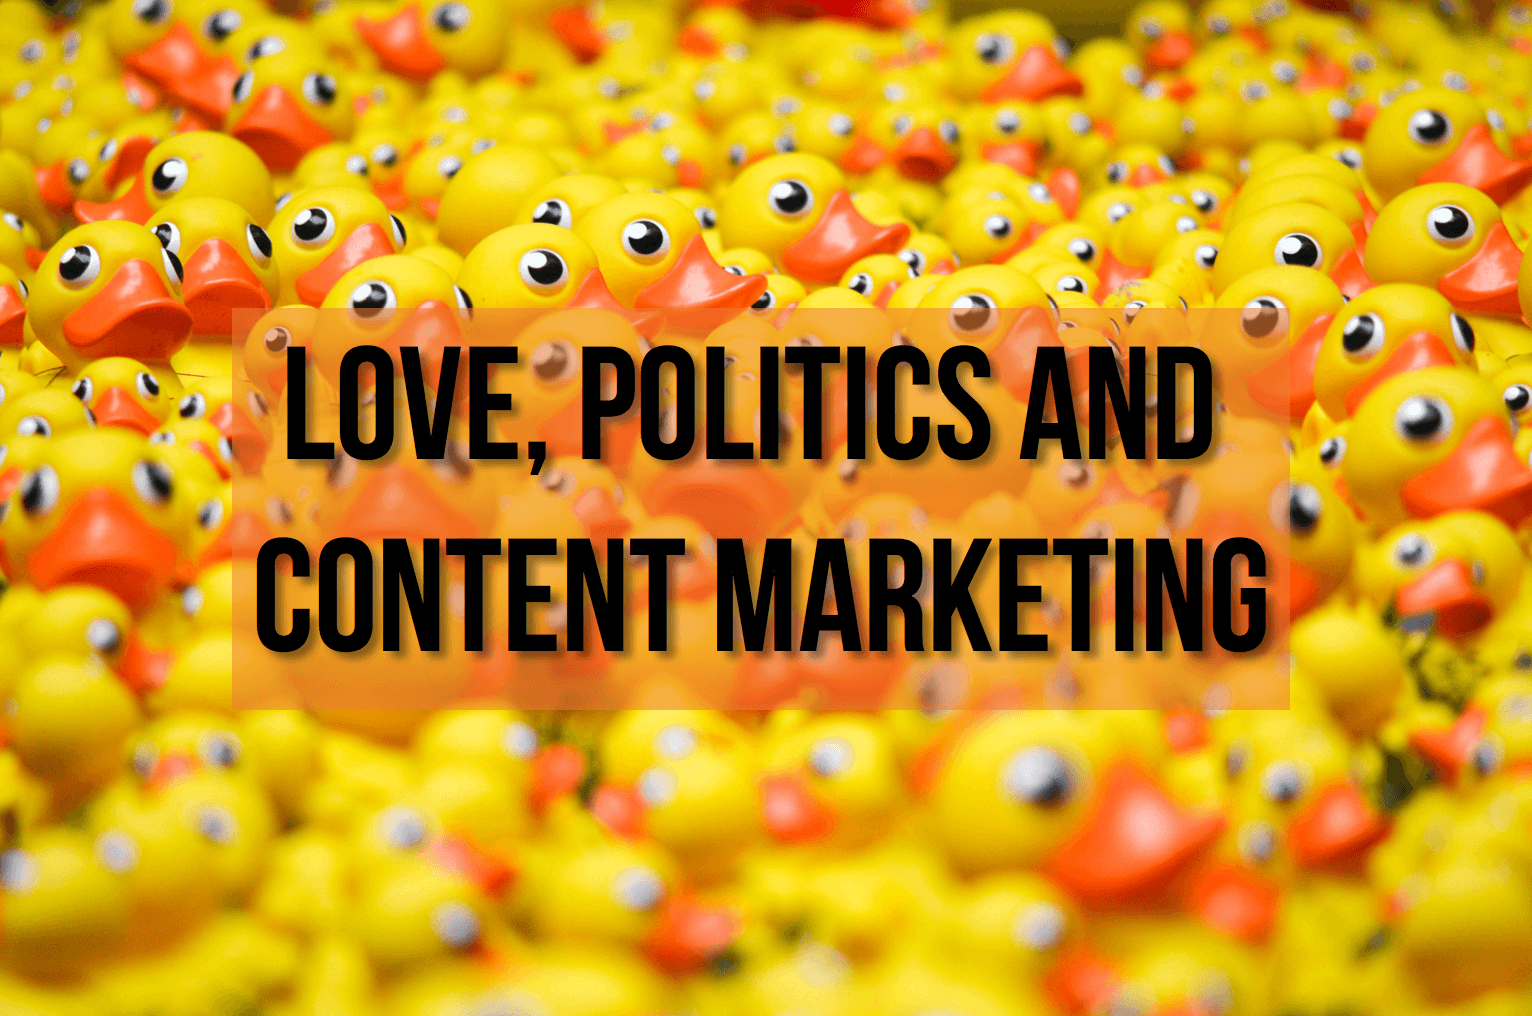 politics and content marketing